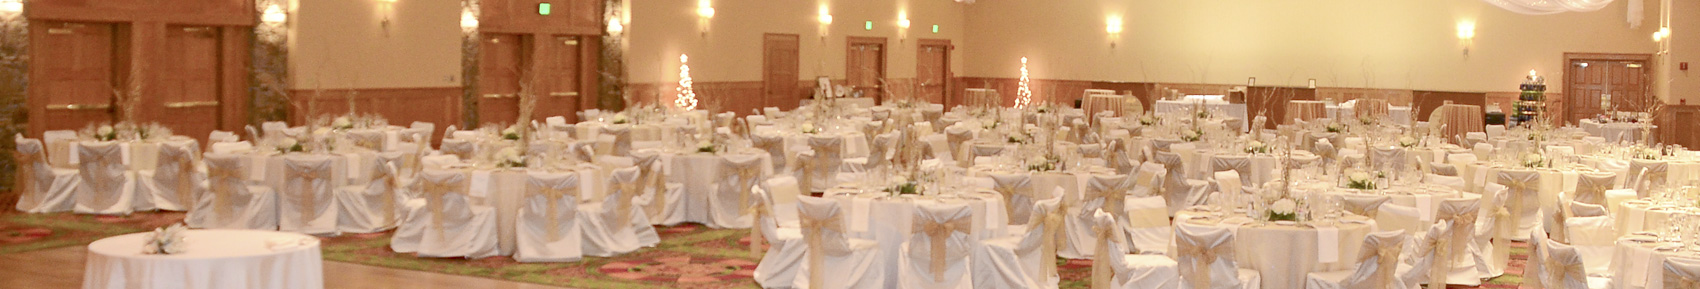 grand-ballroom-reception-1